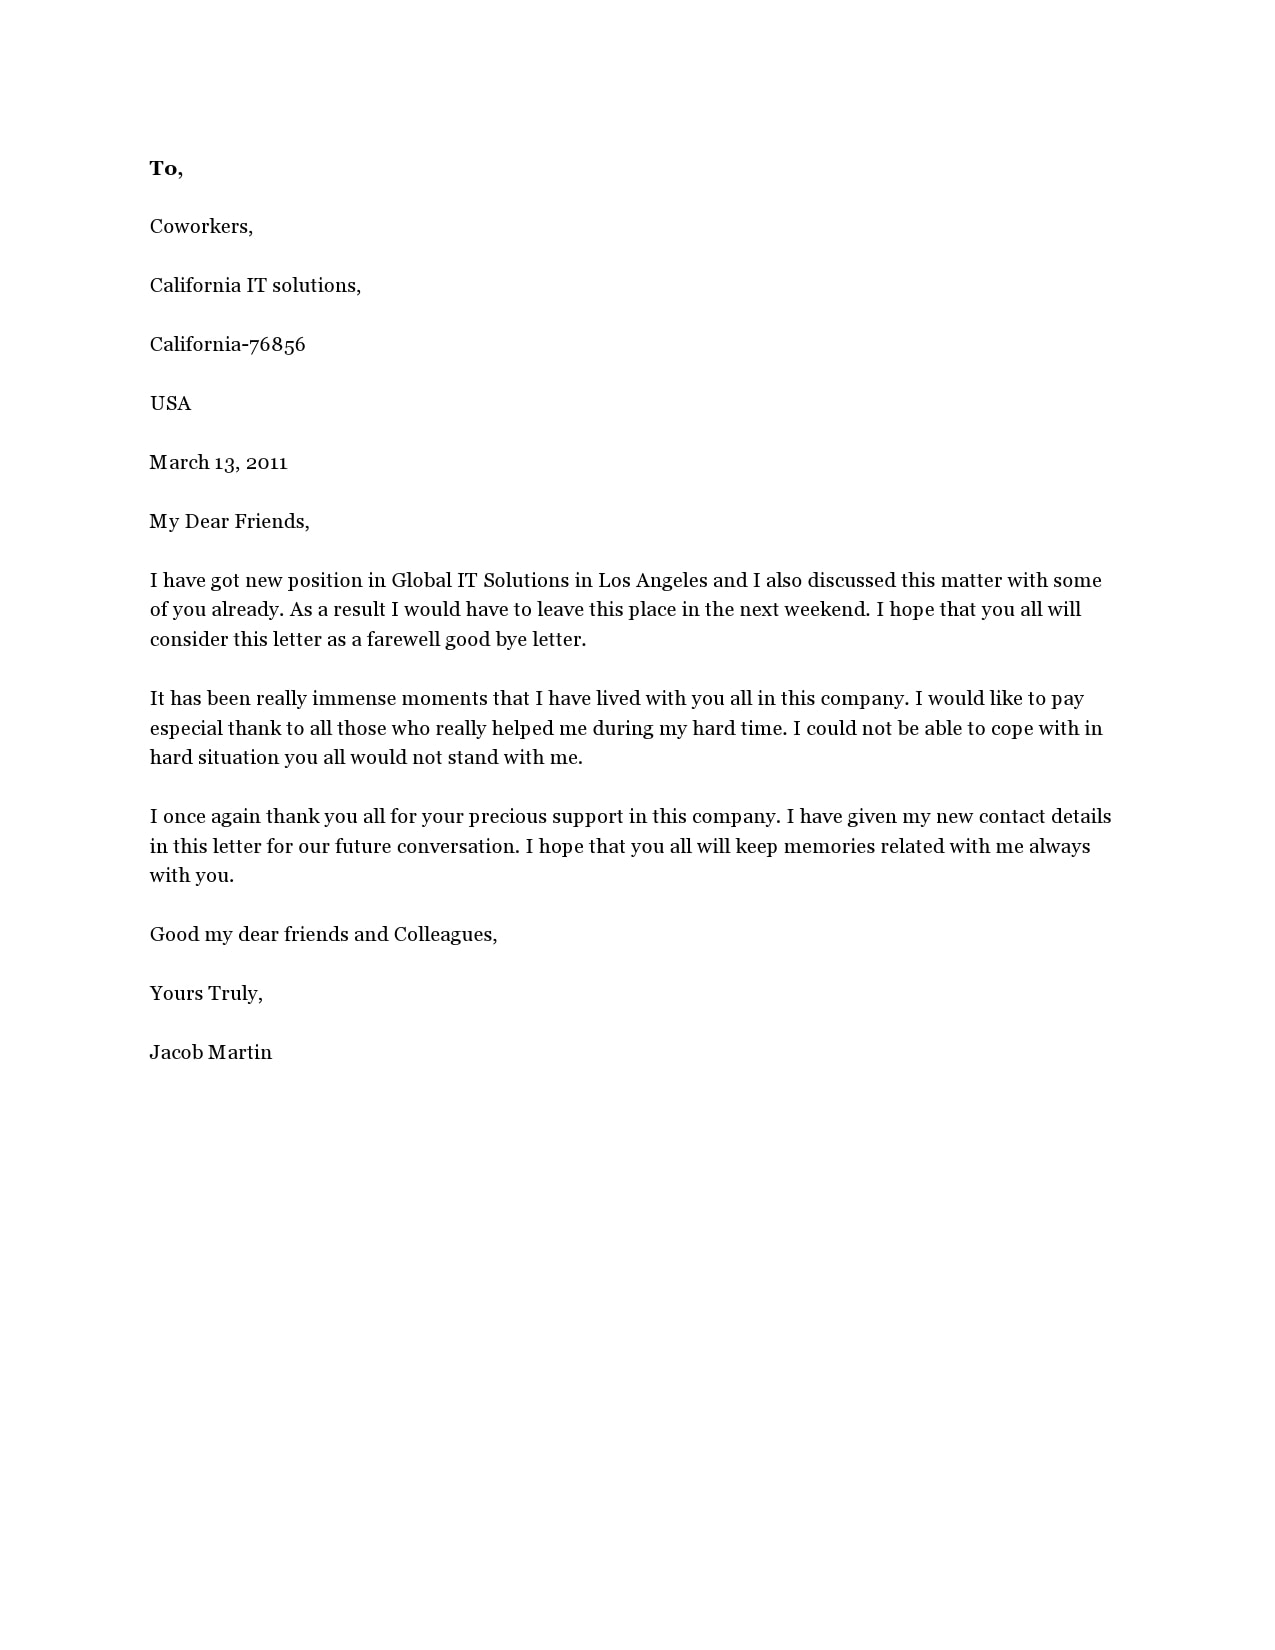 Thank You Letter To Colleagues When Leaving Company : thank, letter, colleagues, leaving, company, Perfect, Farewell, Letters, Colleagues), TemplateArchive